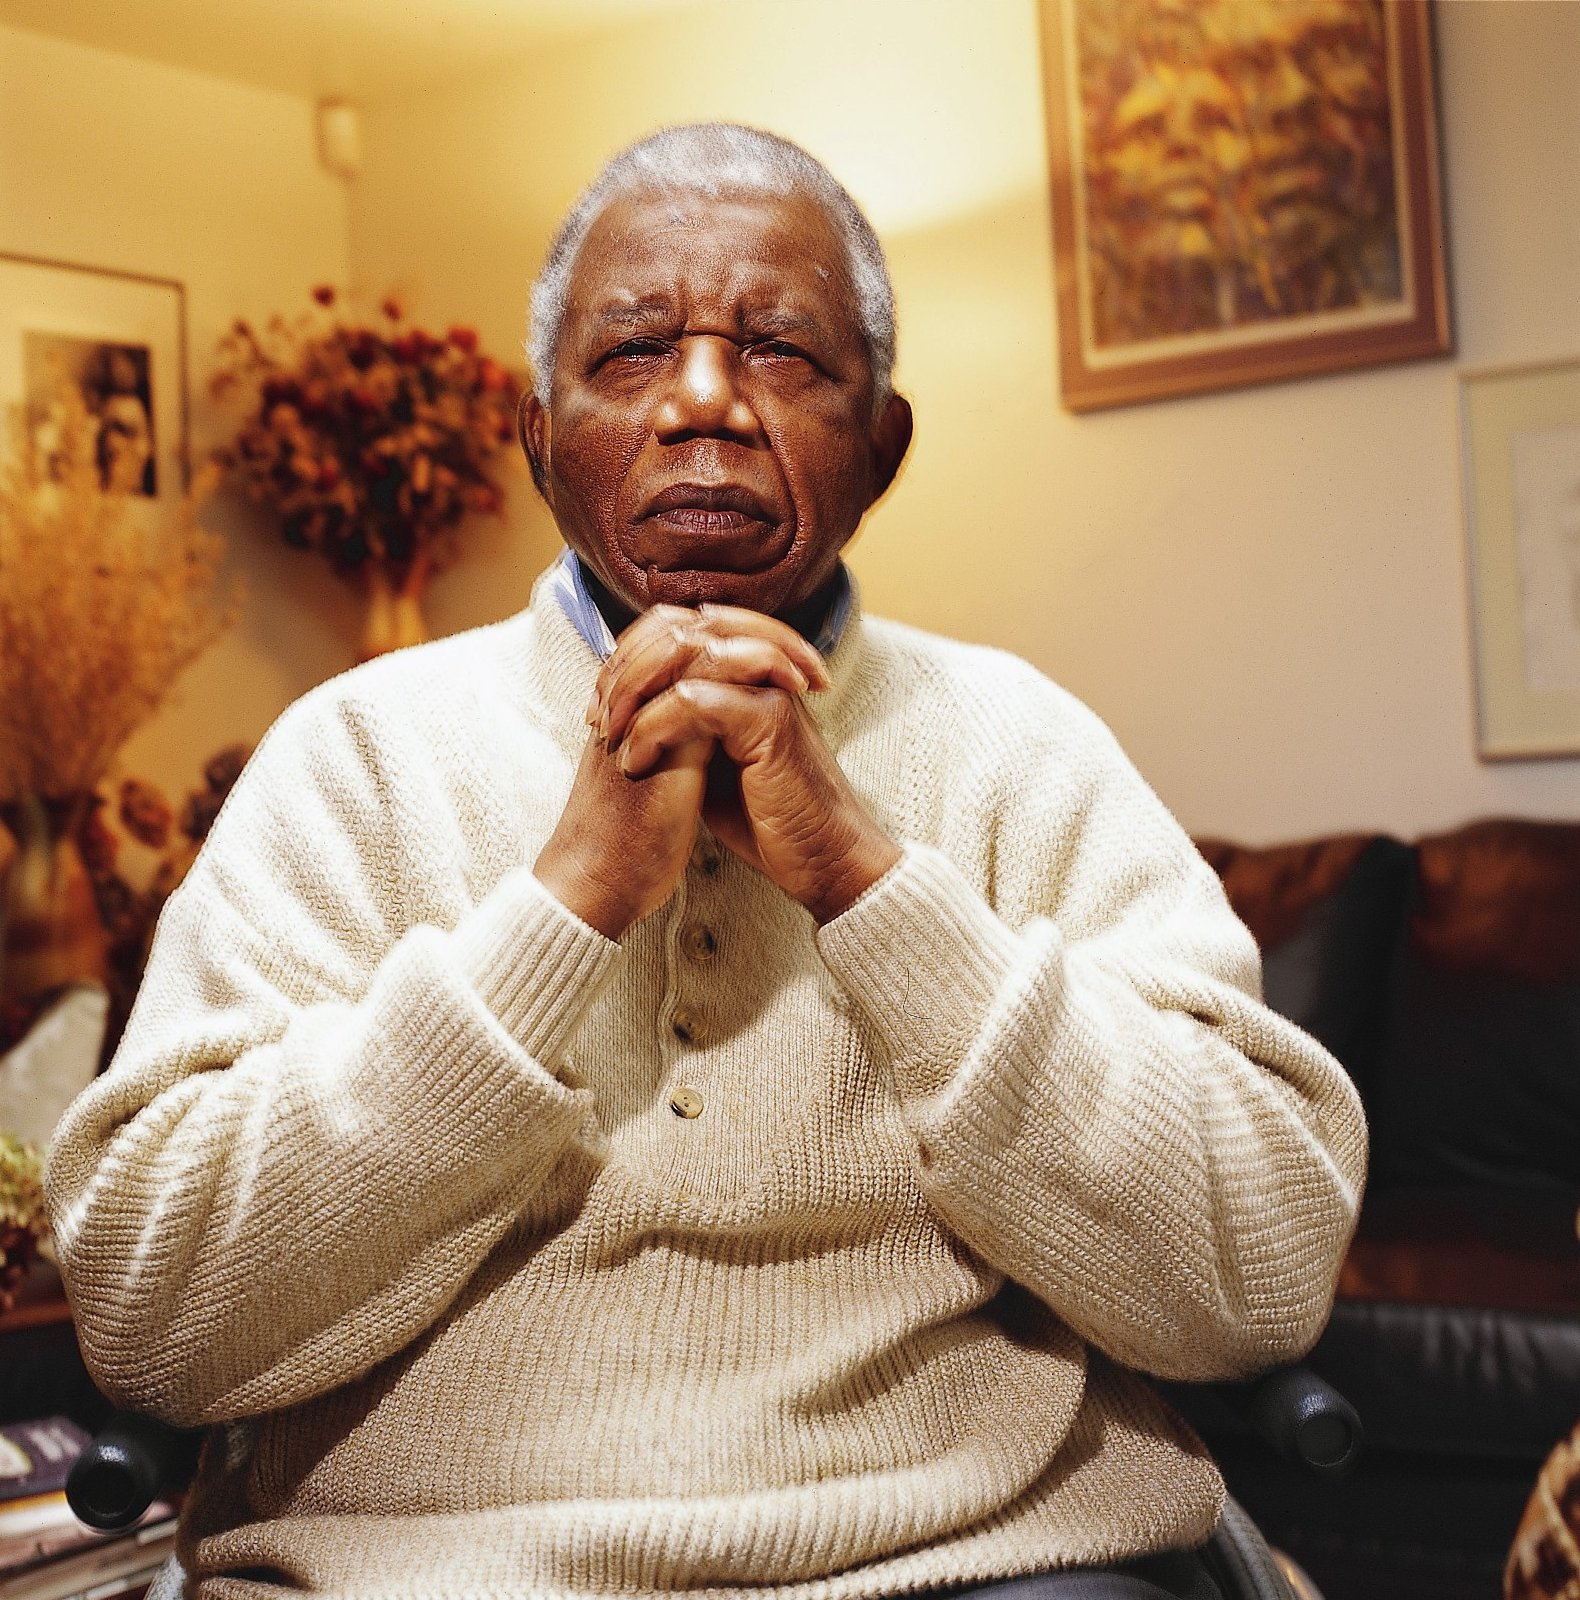 Things Fall Apart Author: Nigerian Author Chinua Achebe, Who Wrote 'Things Fall